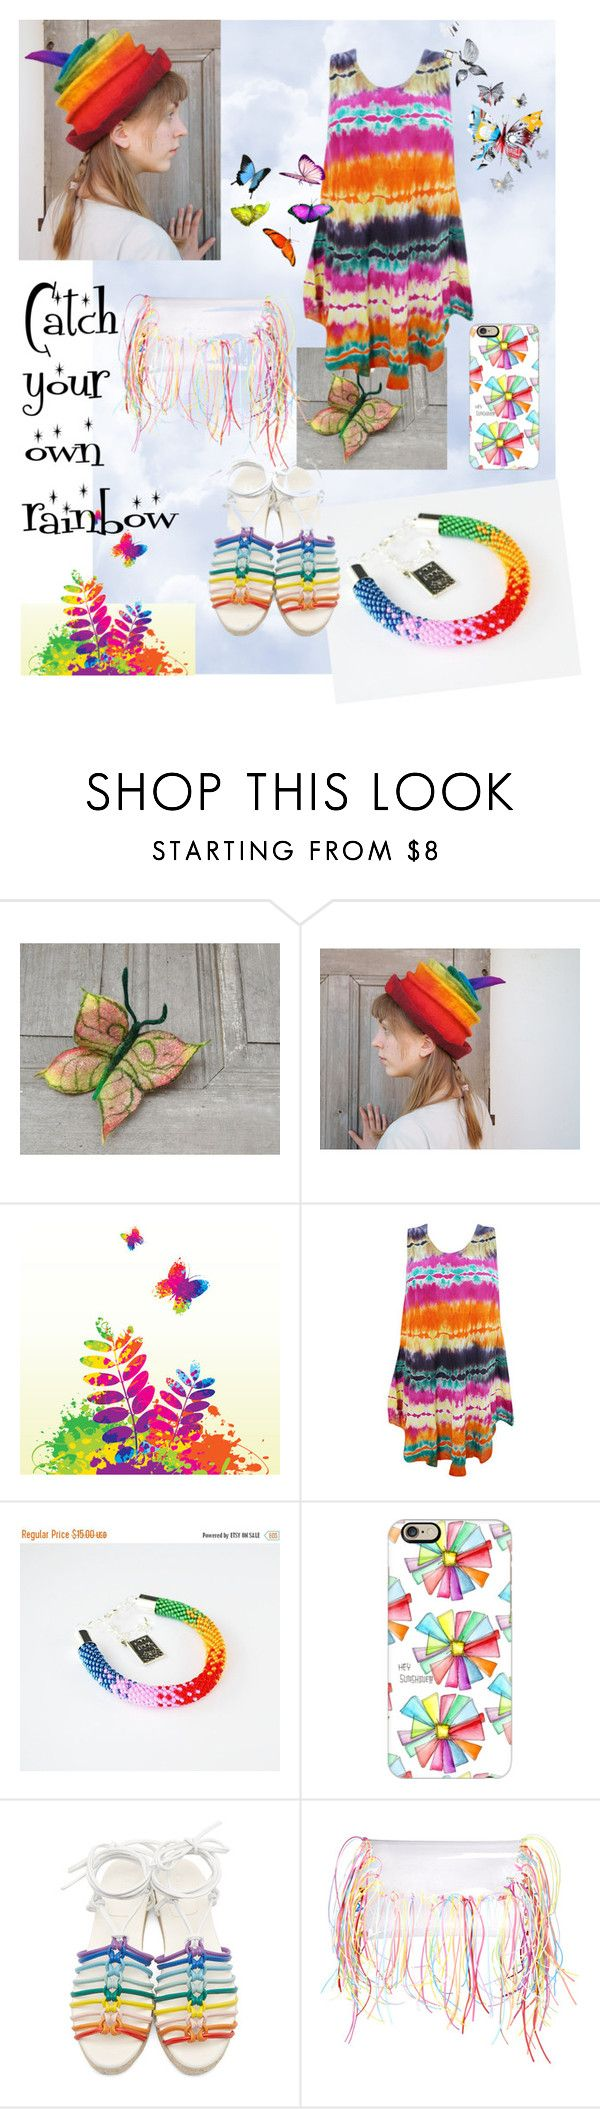 """""""Rainbow"""" by filcalki ❤ liked on Polyvore featuring Casetify, Chloé, boho, rainbow, hippie, summer2016 and filcalki"""